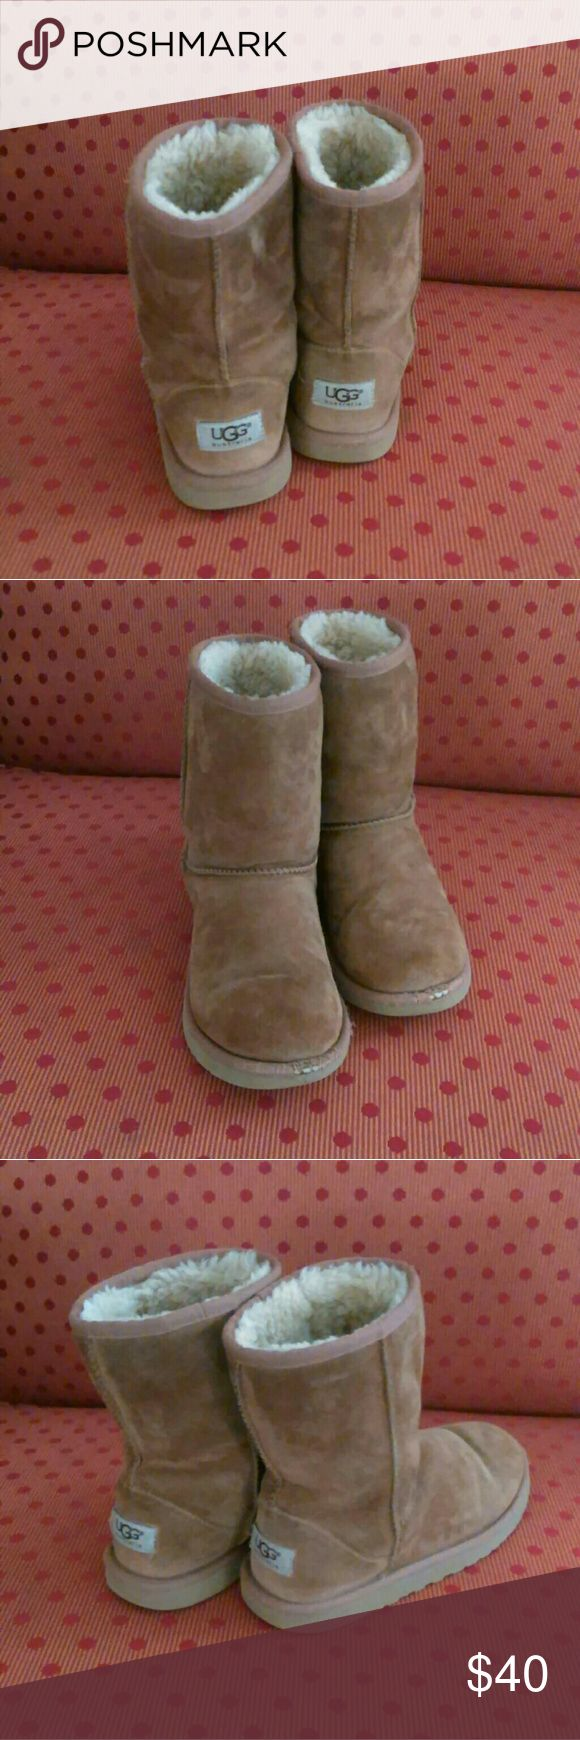 """CHESTNUT 🌰 UGGS AUSTRALIA BOOTS Size 4 Really Cute Chestnut UGGS Australia Boots perfect for Winter.They are Classic Short Style and have a Genuine Sheepskin Lining. They are in great condition with only slight wear on the toe.  Approximate Measurements:  Size 4 HEIGHT-8"""" WIDTH-4"""" BOOT TOP-6"""" ROUND OPENING-12"""" UGGS Shoes Winter & Rain Boots"""